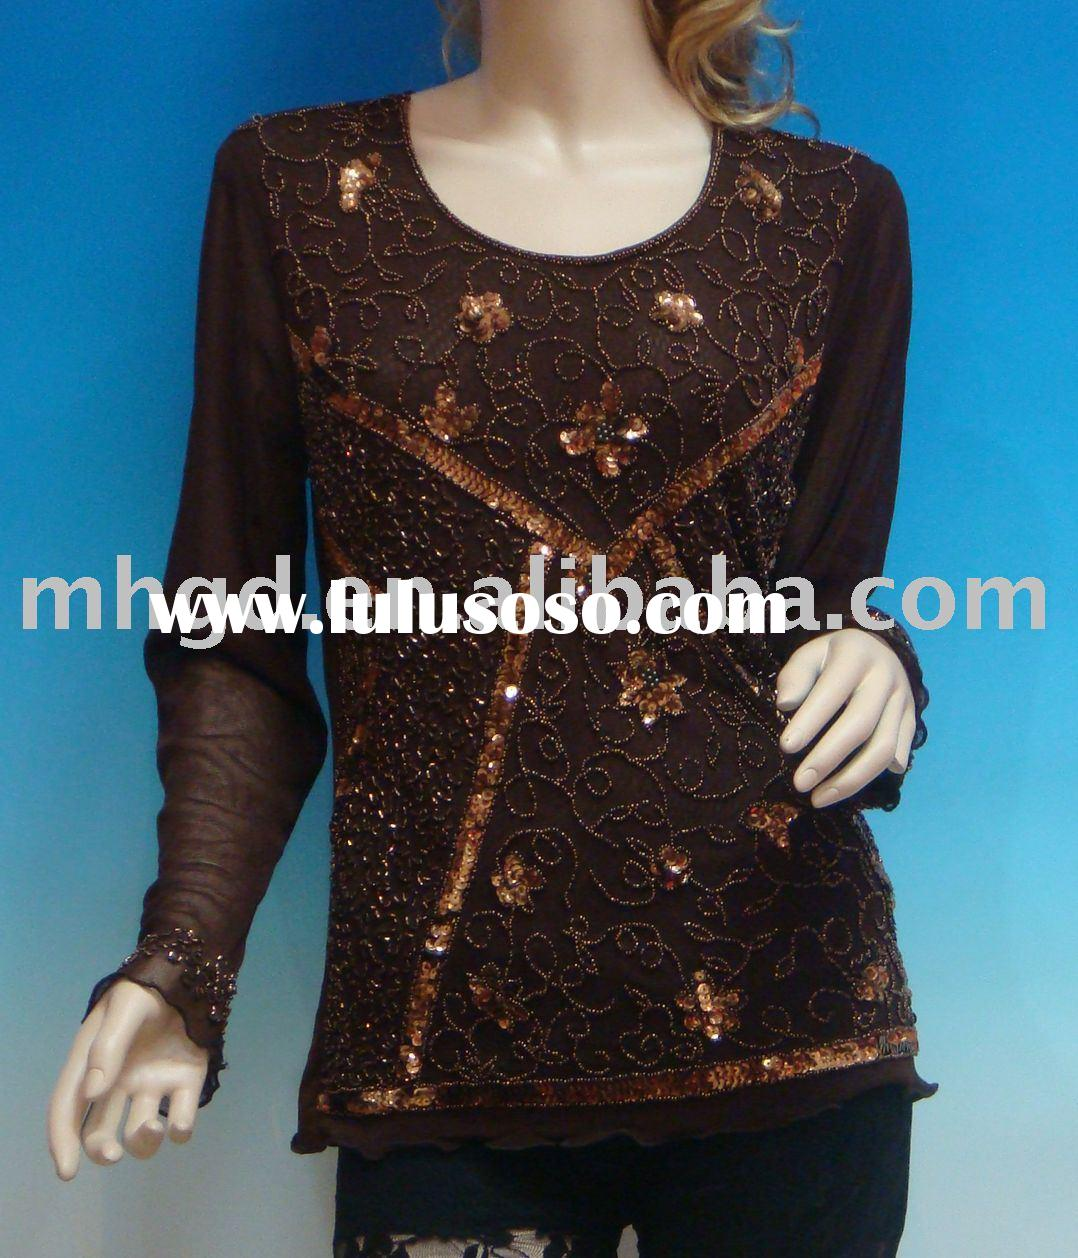 2432# ladies' blouse(women's clothing,causal brand clothing)